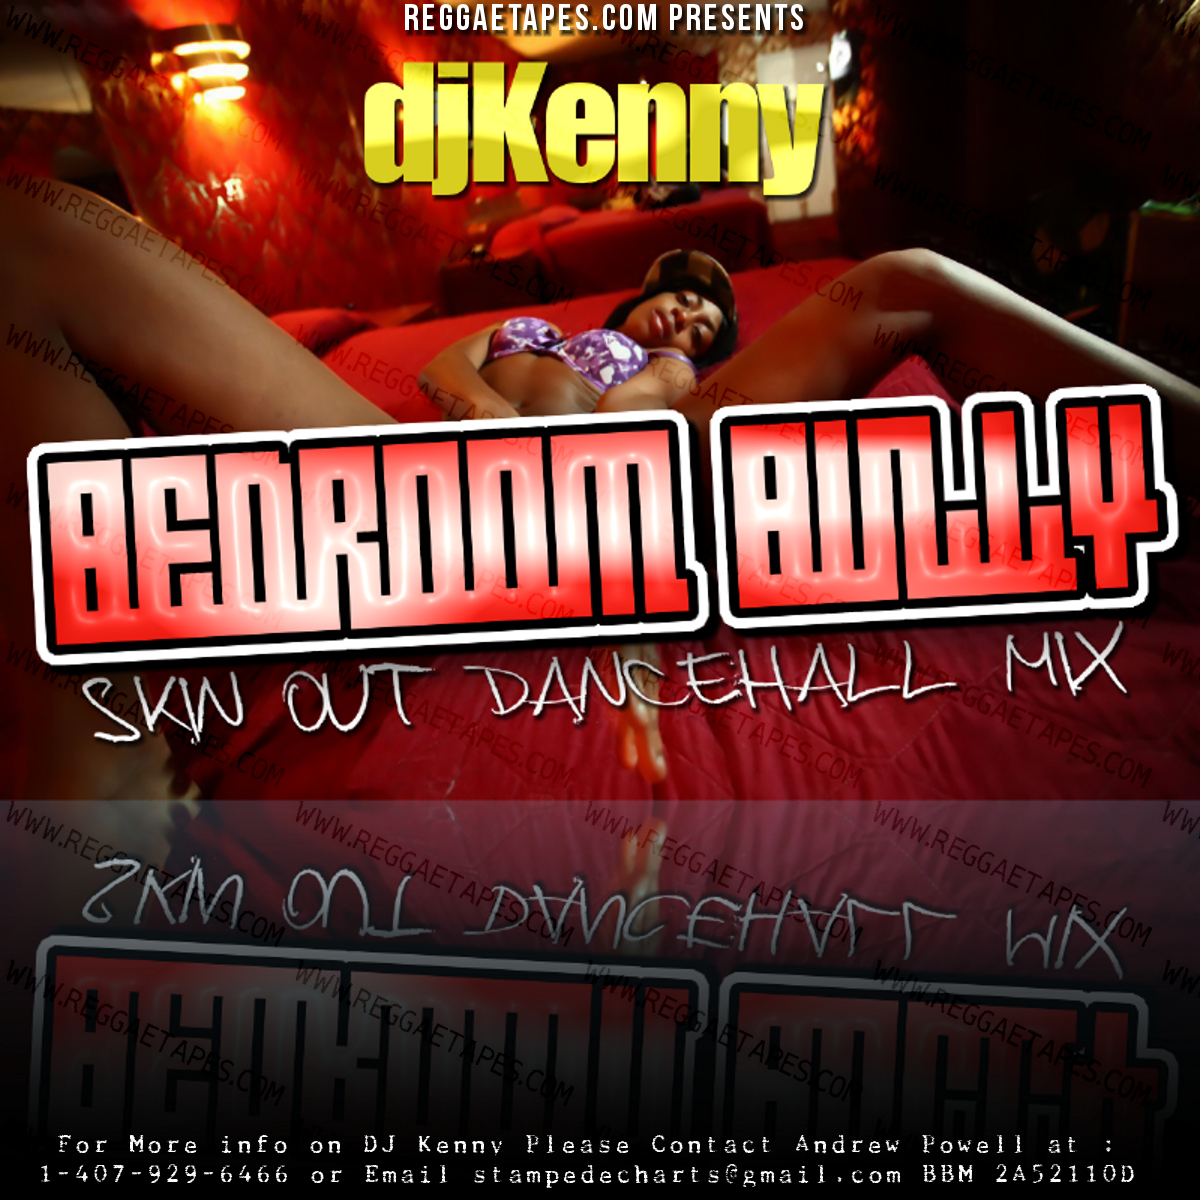 sound dj kenny bedroom bully skinout dancehall mix march 2k13